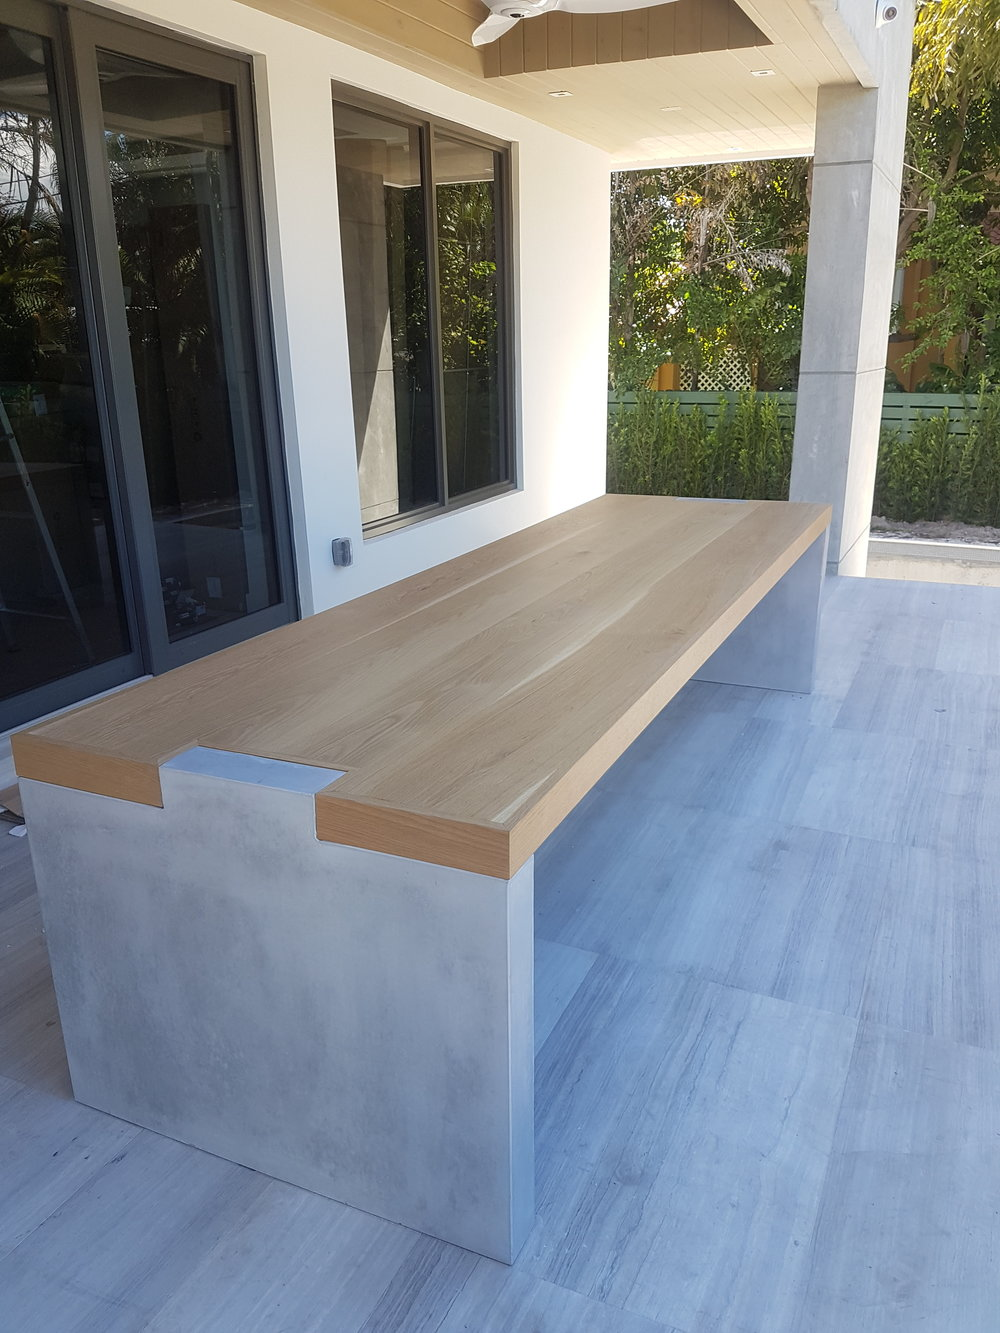 Wood and Concrete Table